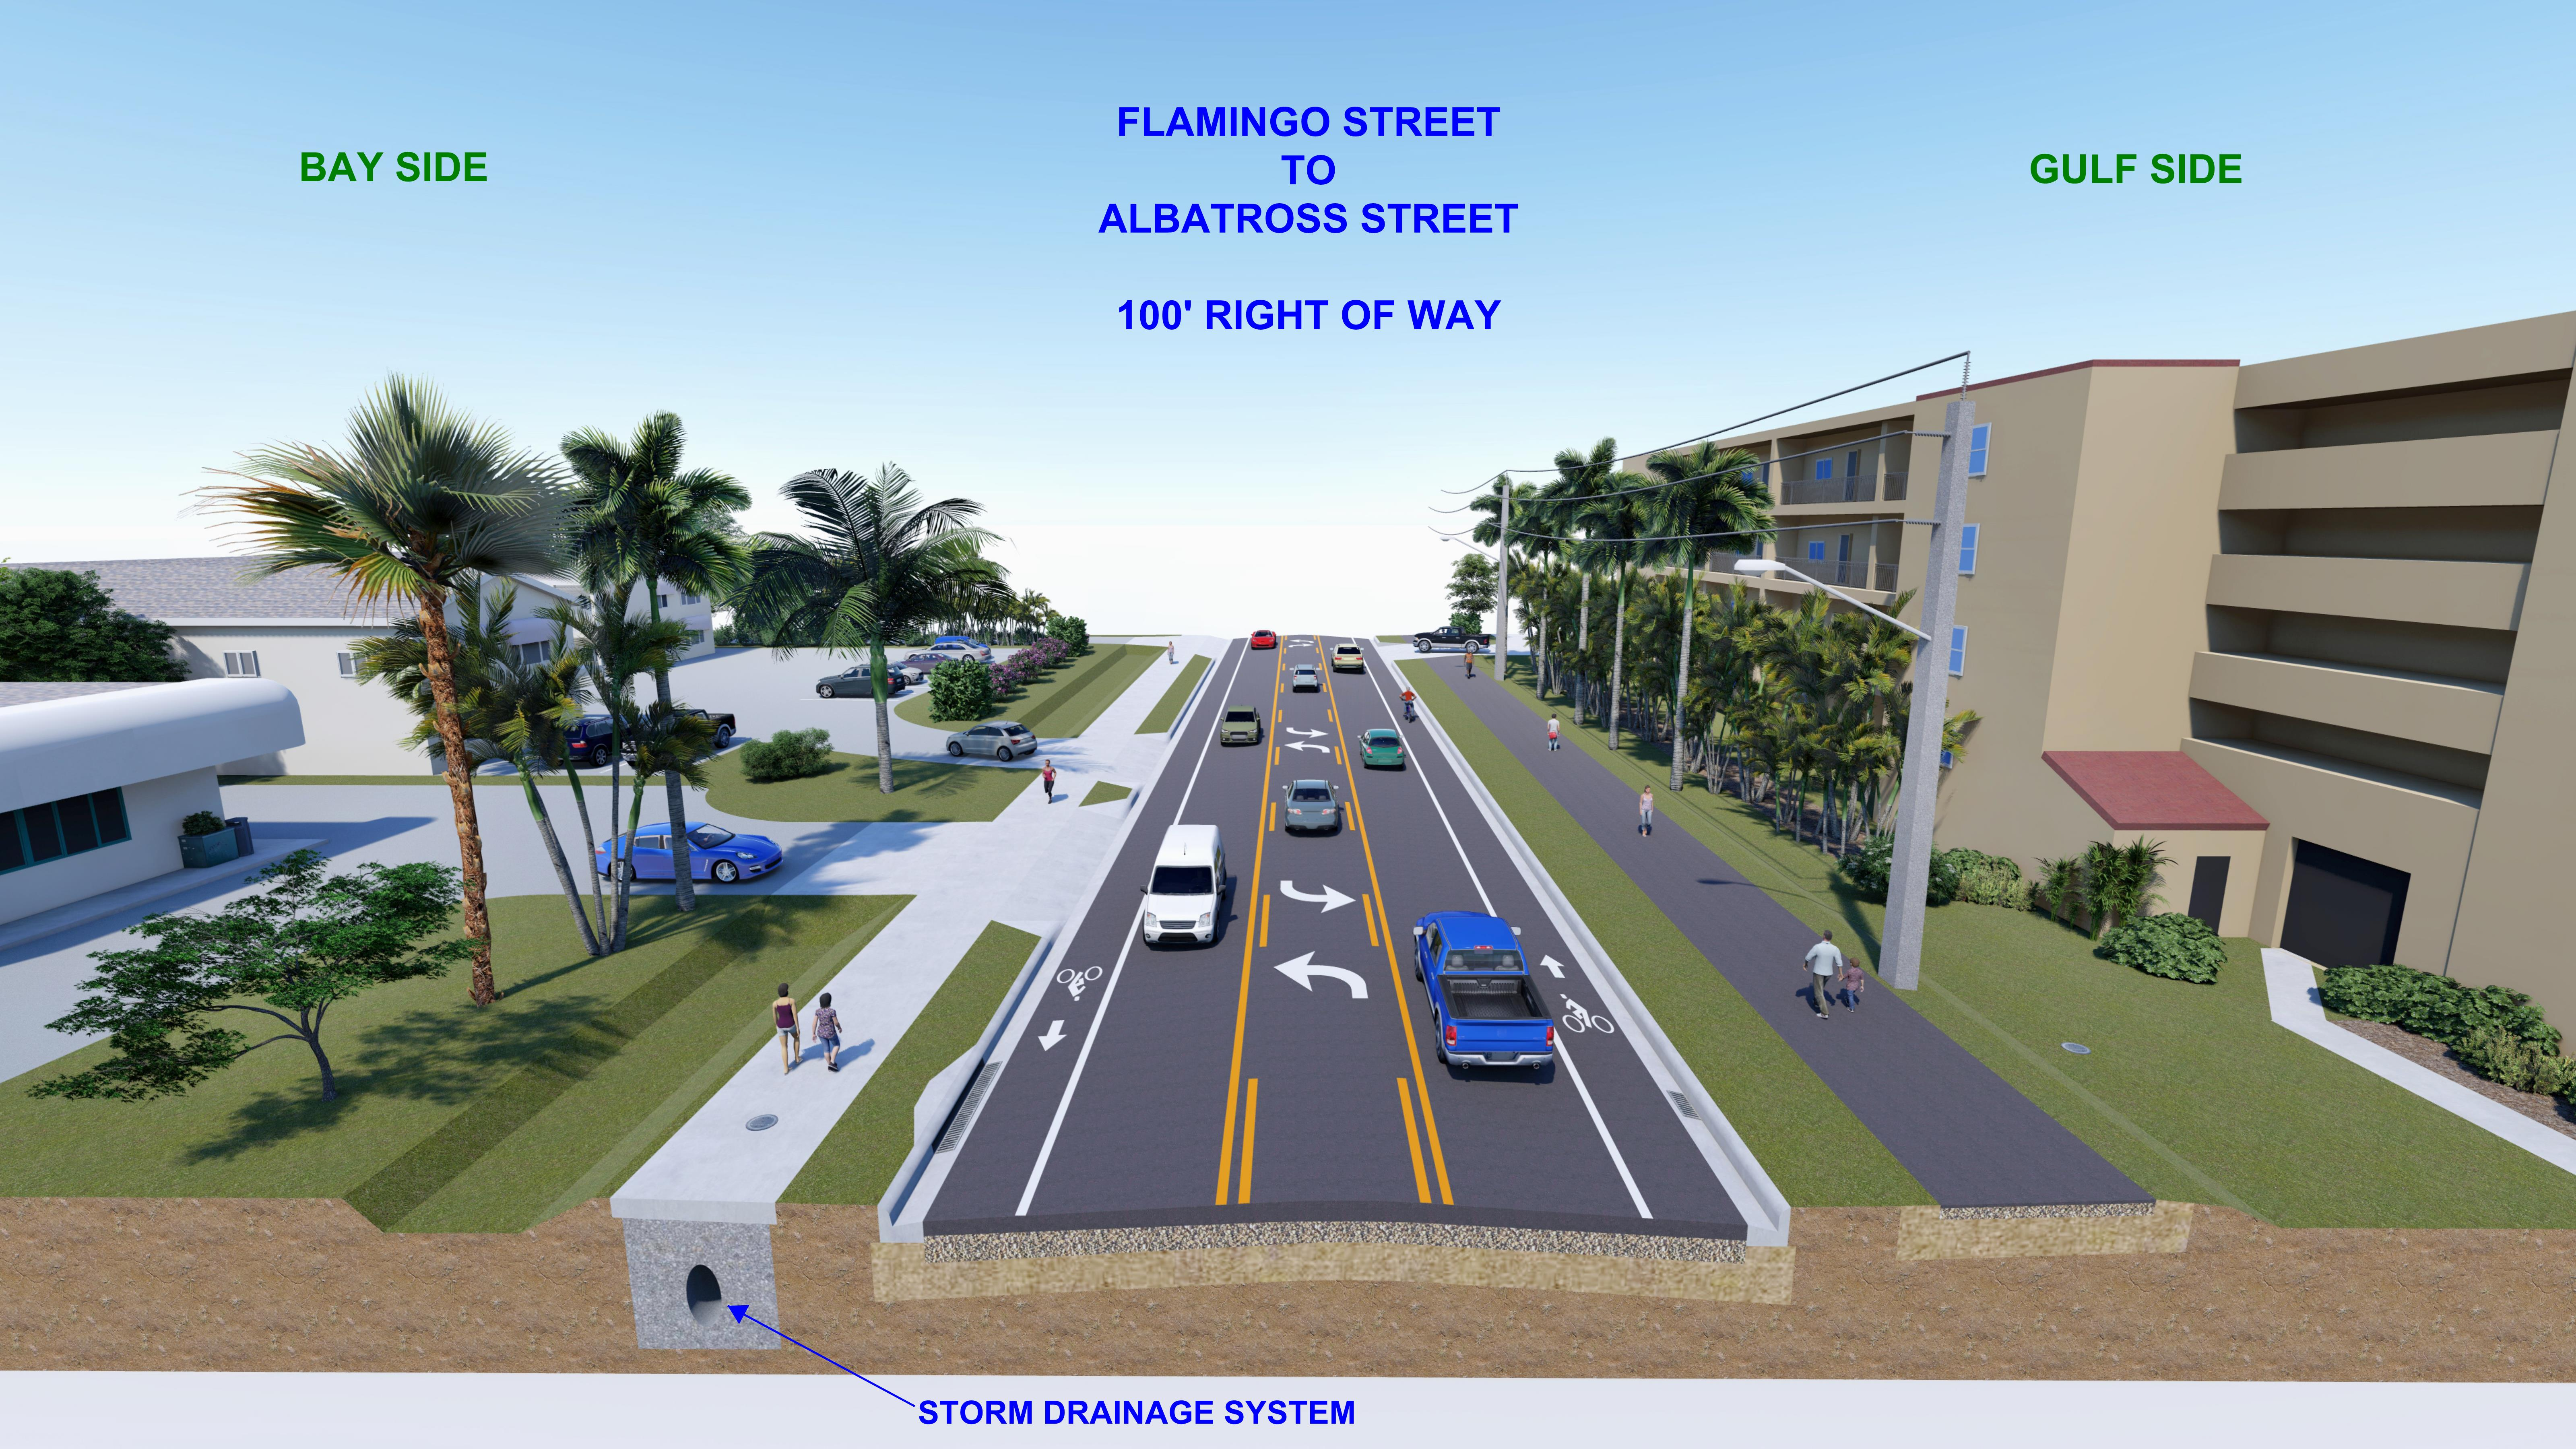 //refreshfmbeach.com/wp-content/uploads/2019/08/Rendering-Estero-Section-Flamingo-St-to-Albatross-St.jpg